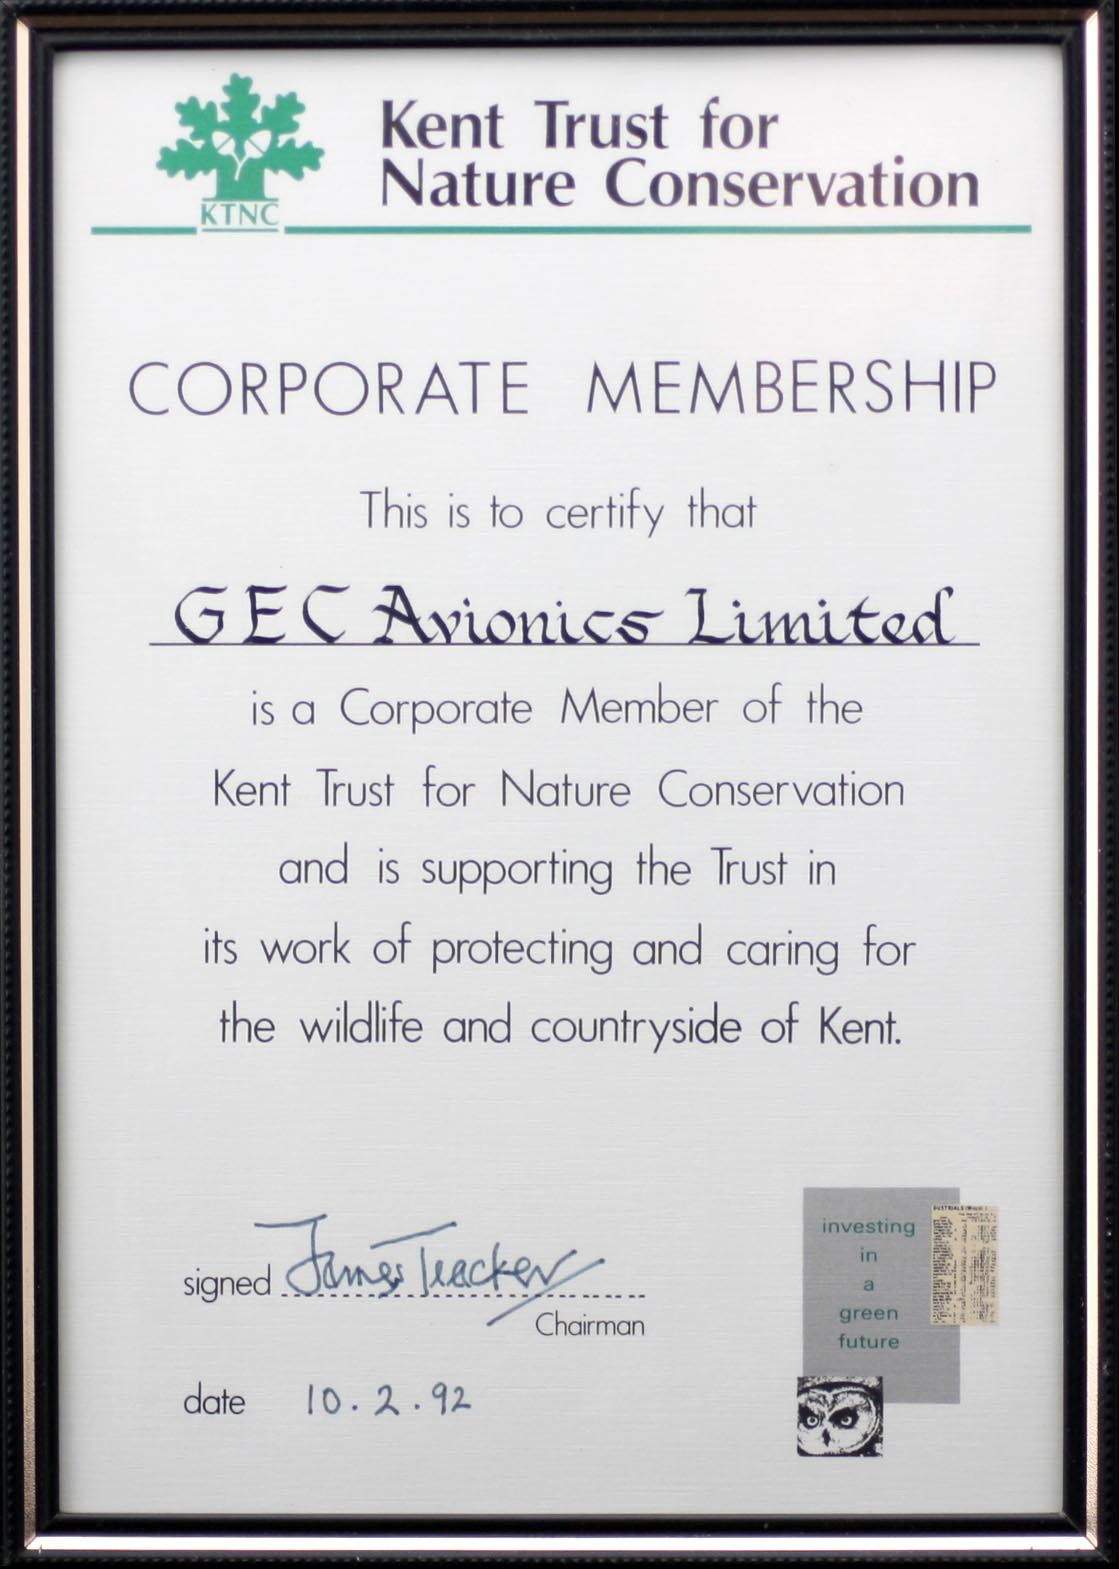 Kent Trust for Nature Conservation